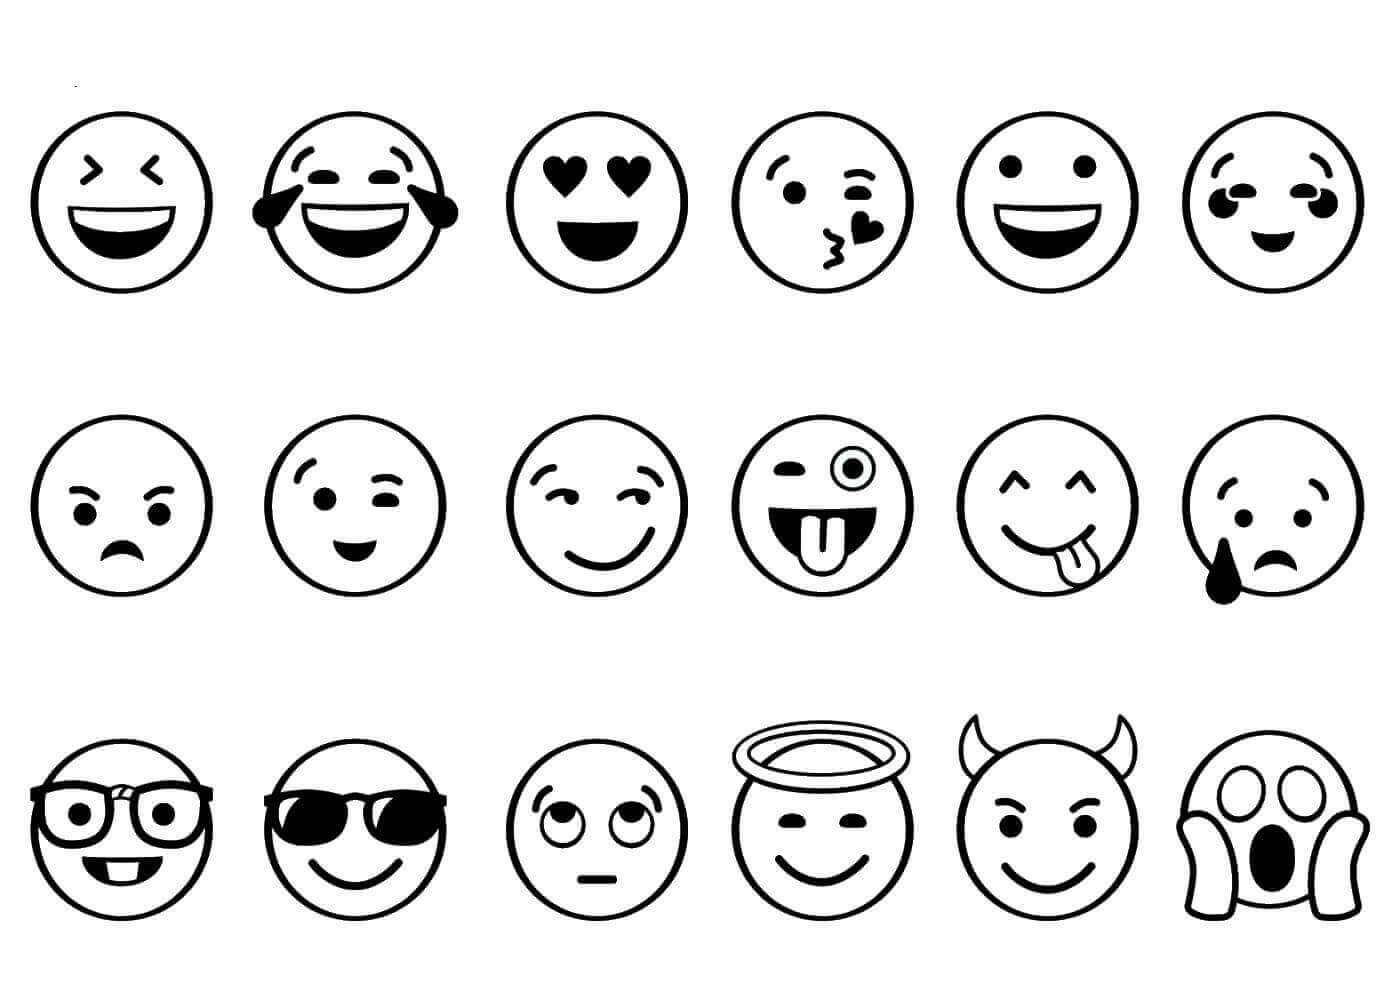 Coloring Pages For Emojis Emoji Coloring Pages Coloring Pages